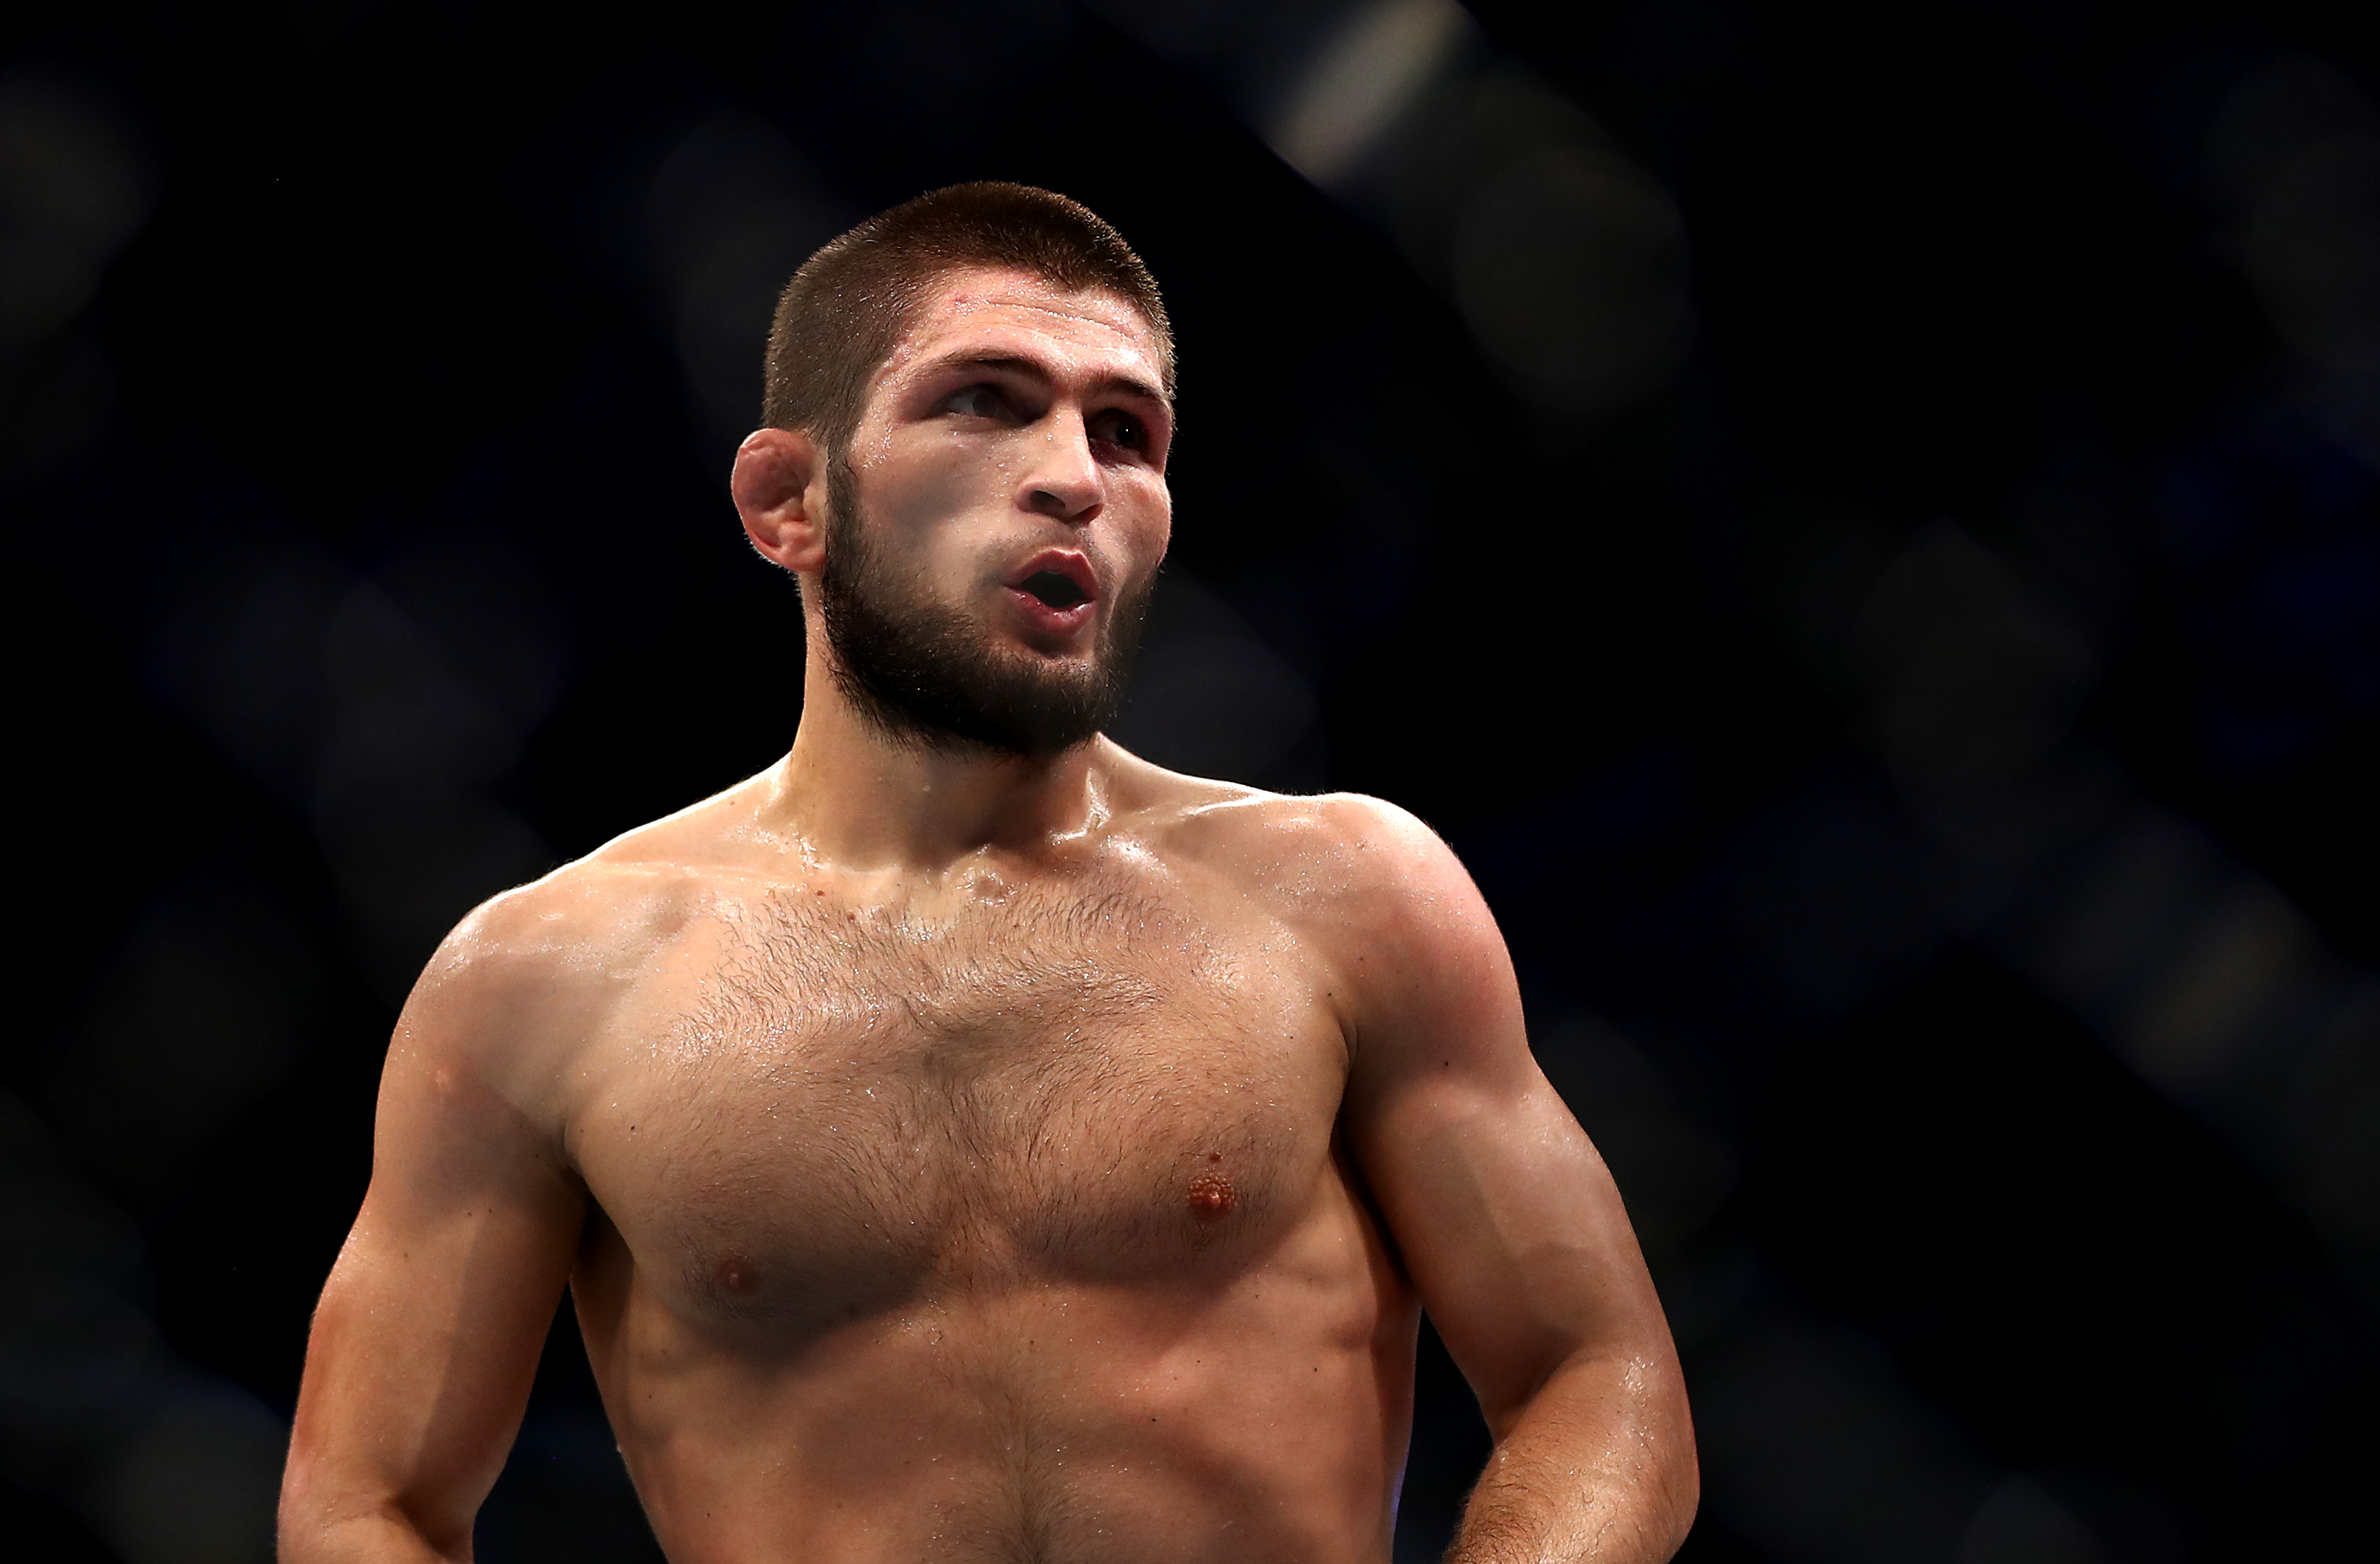 UFC fighter Khabib Nurmagomedov's father Abdulmanap dies 'from Covid-19 complications'